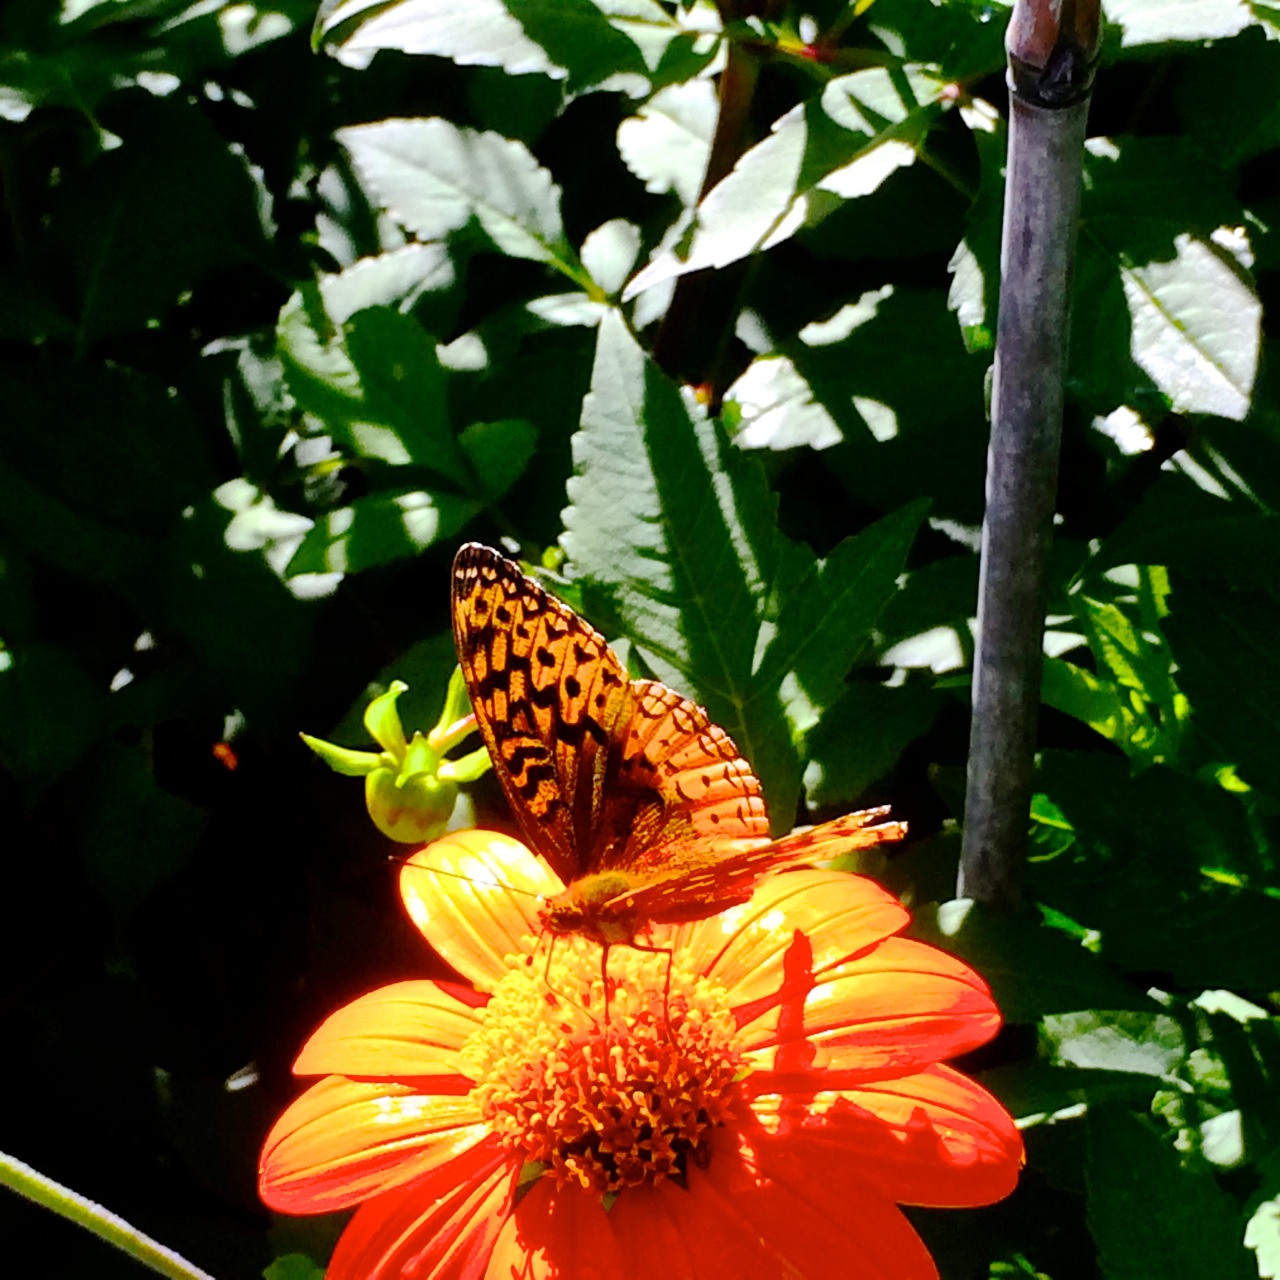 I Only Had My Cell Phone With Me When I Visited A Few Days Ago U2013 However I  Tried To Capture The Glory Of This Garden With Some Snapshots Of The  Butterflies ...